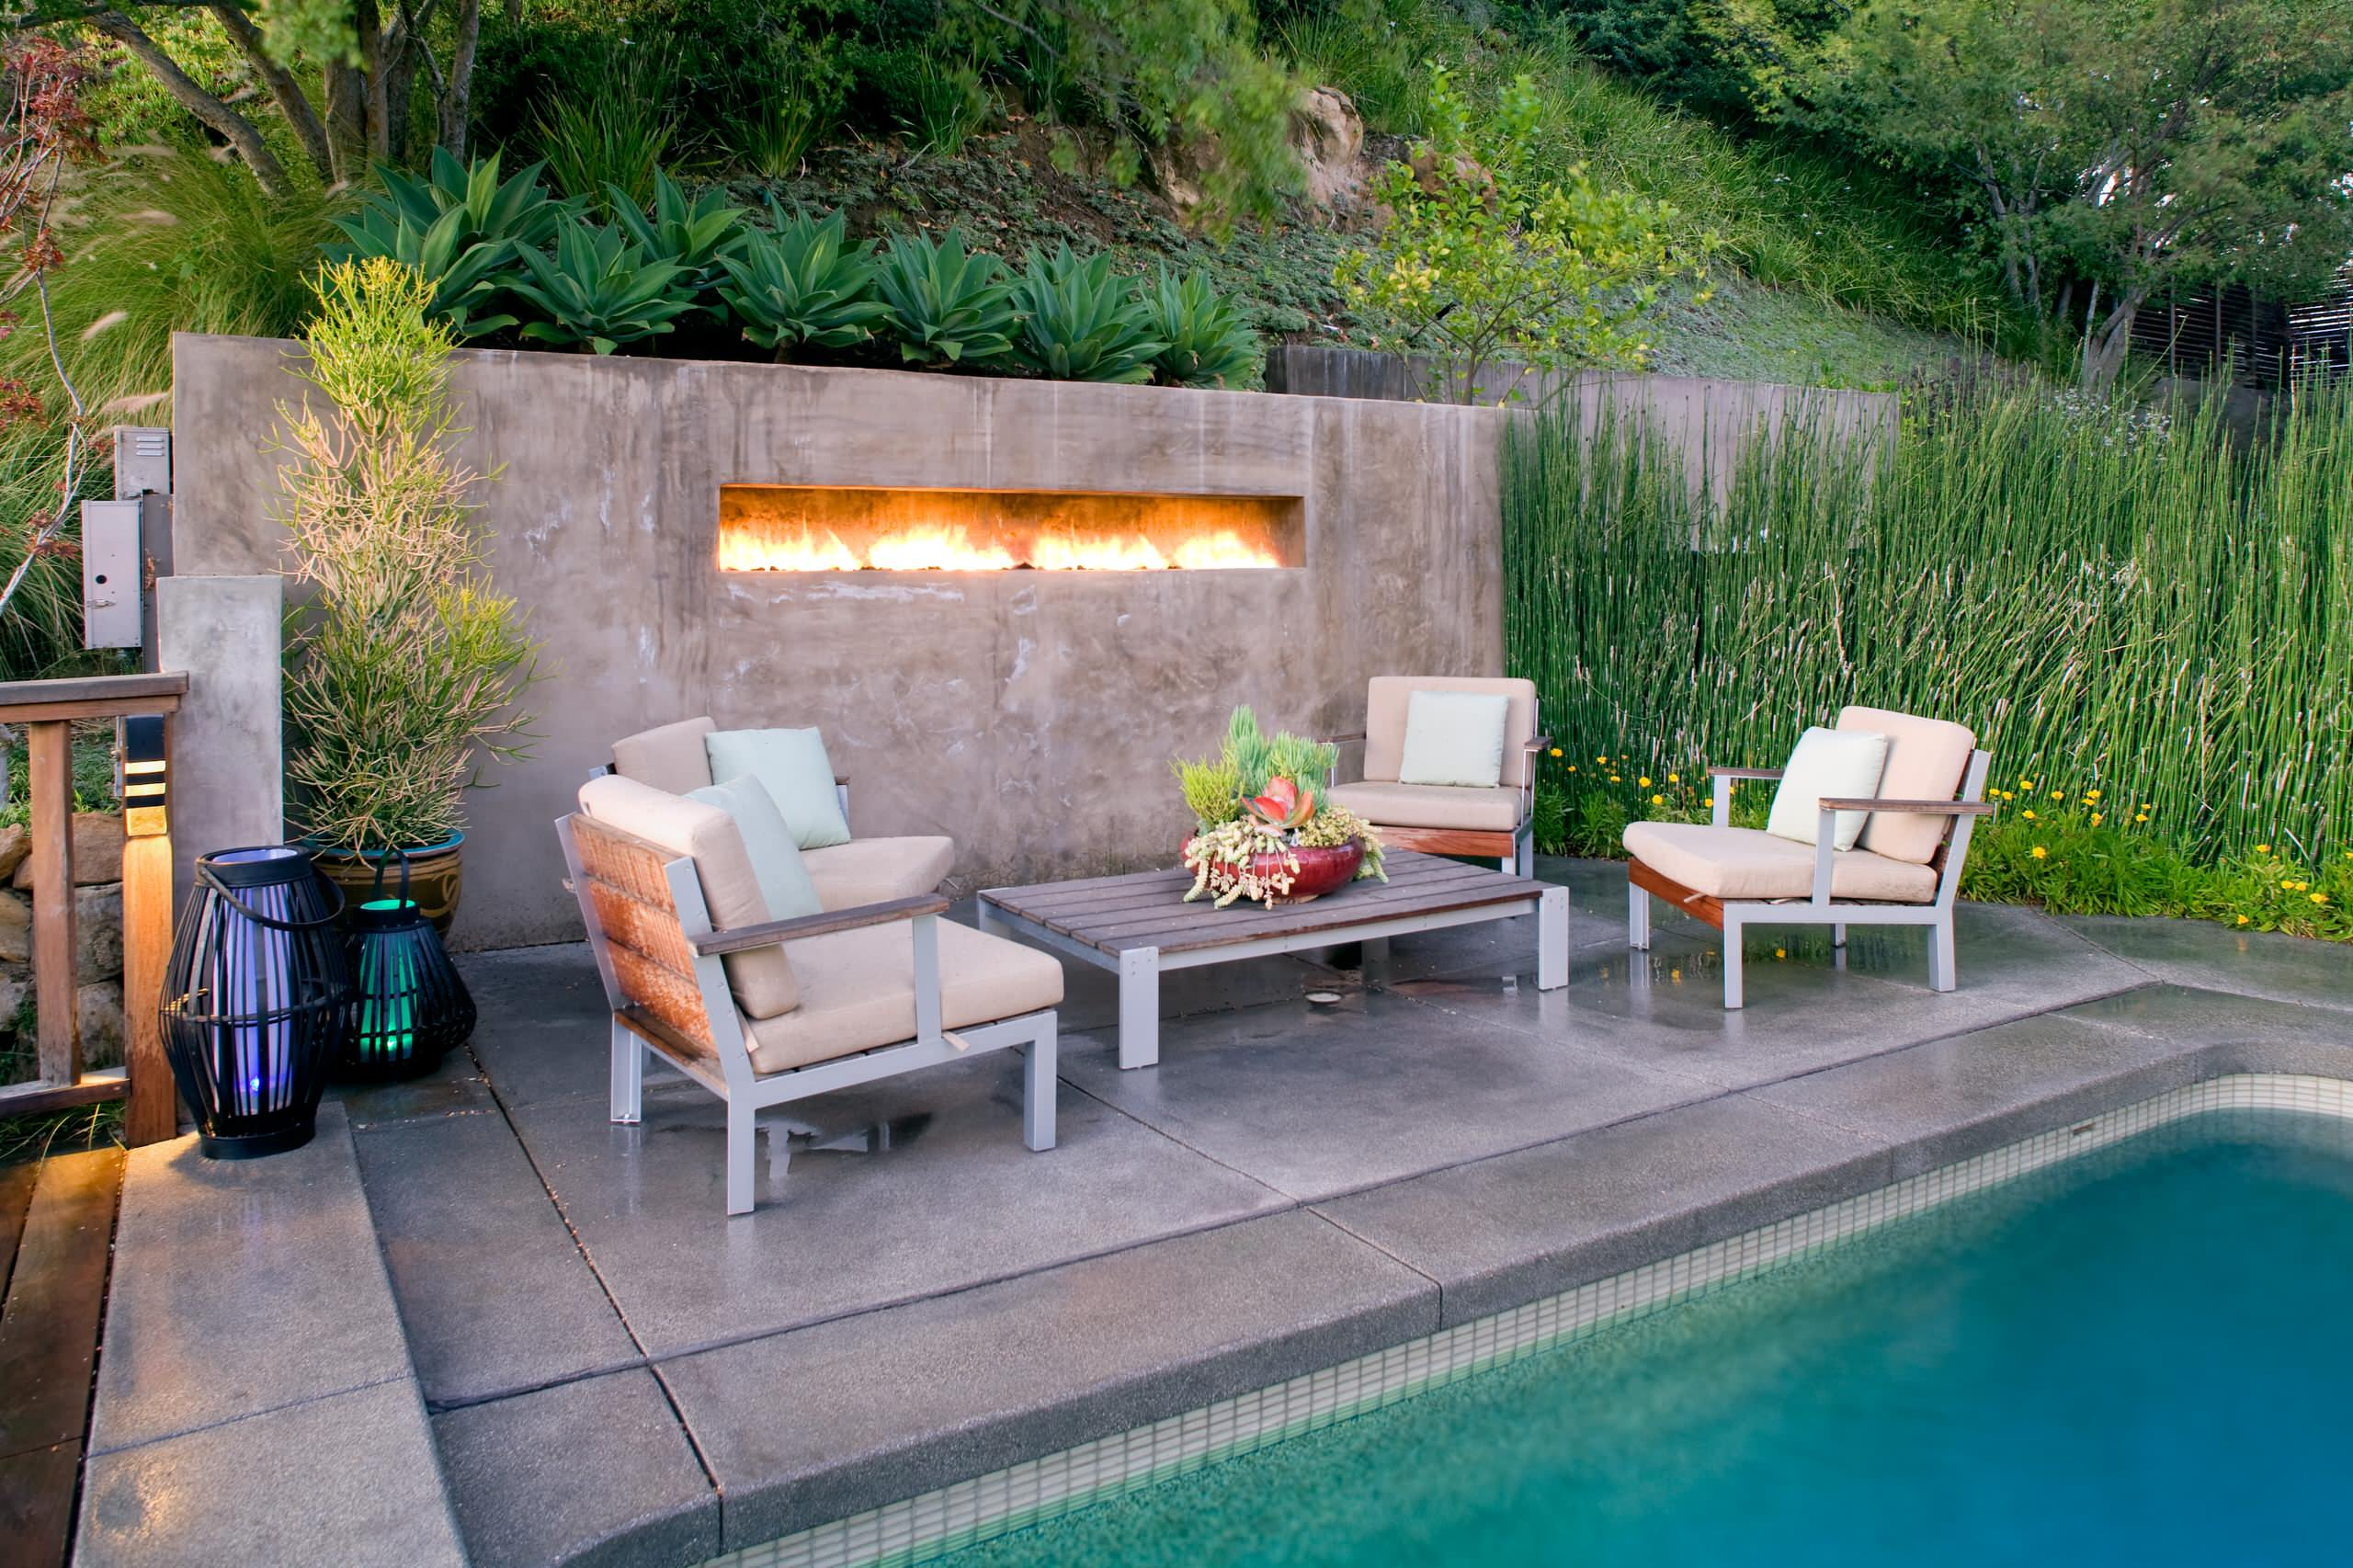 Design Outdoor Patio Ideas 50 best patio ideas for design inspiration 2017 2 a refreshing mix of fire and water